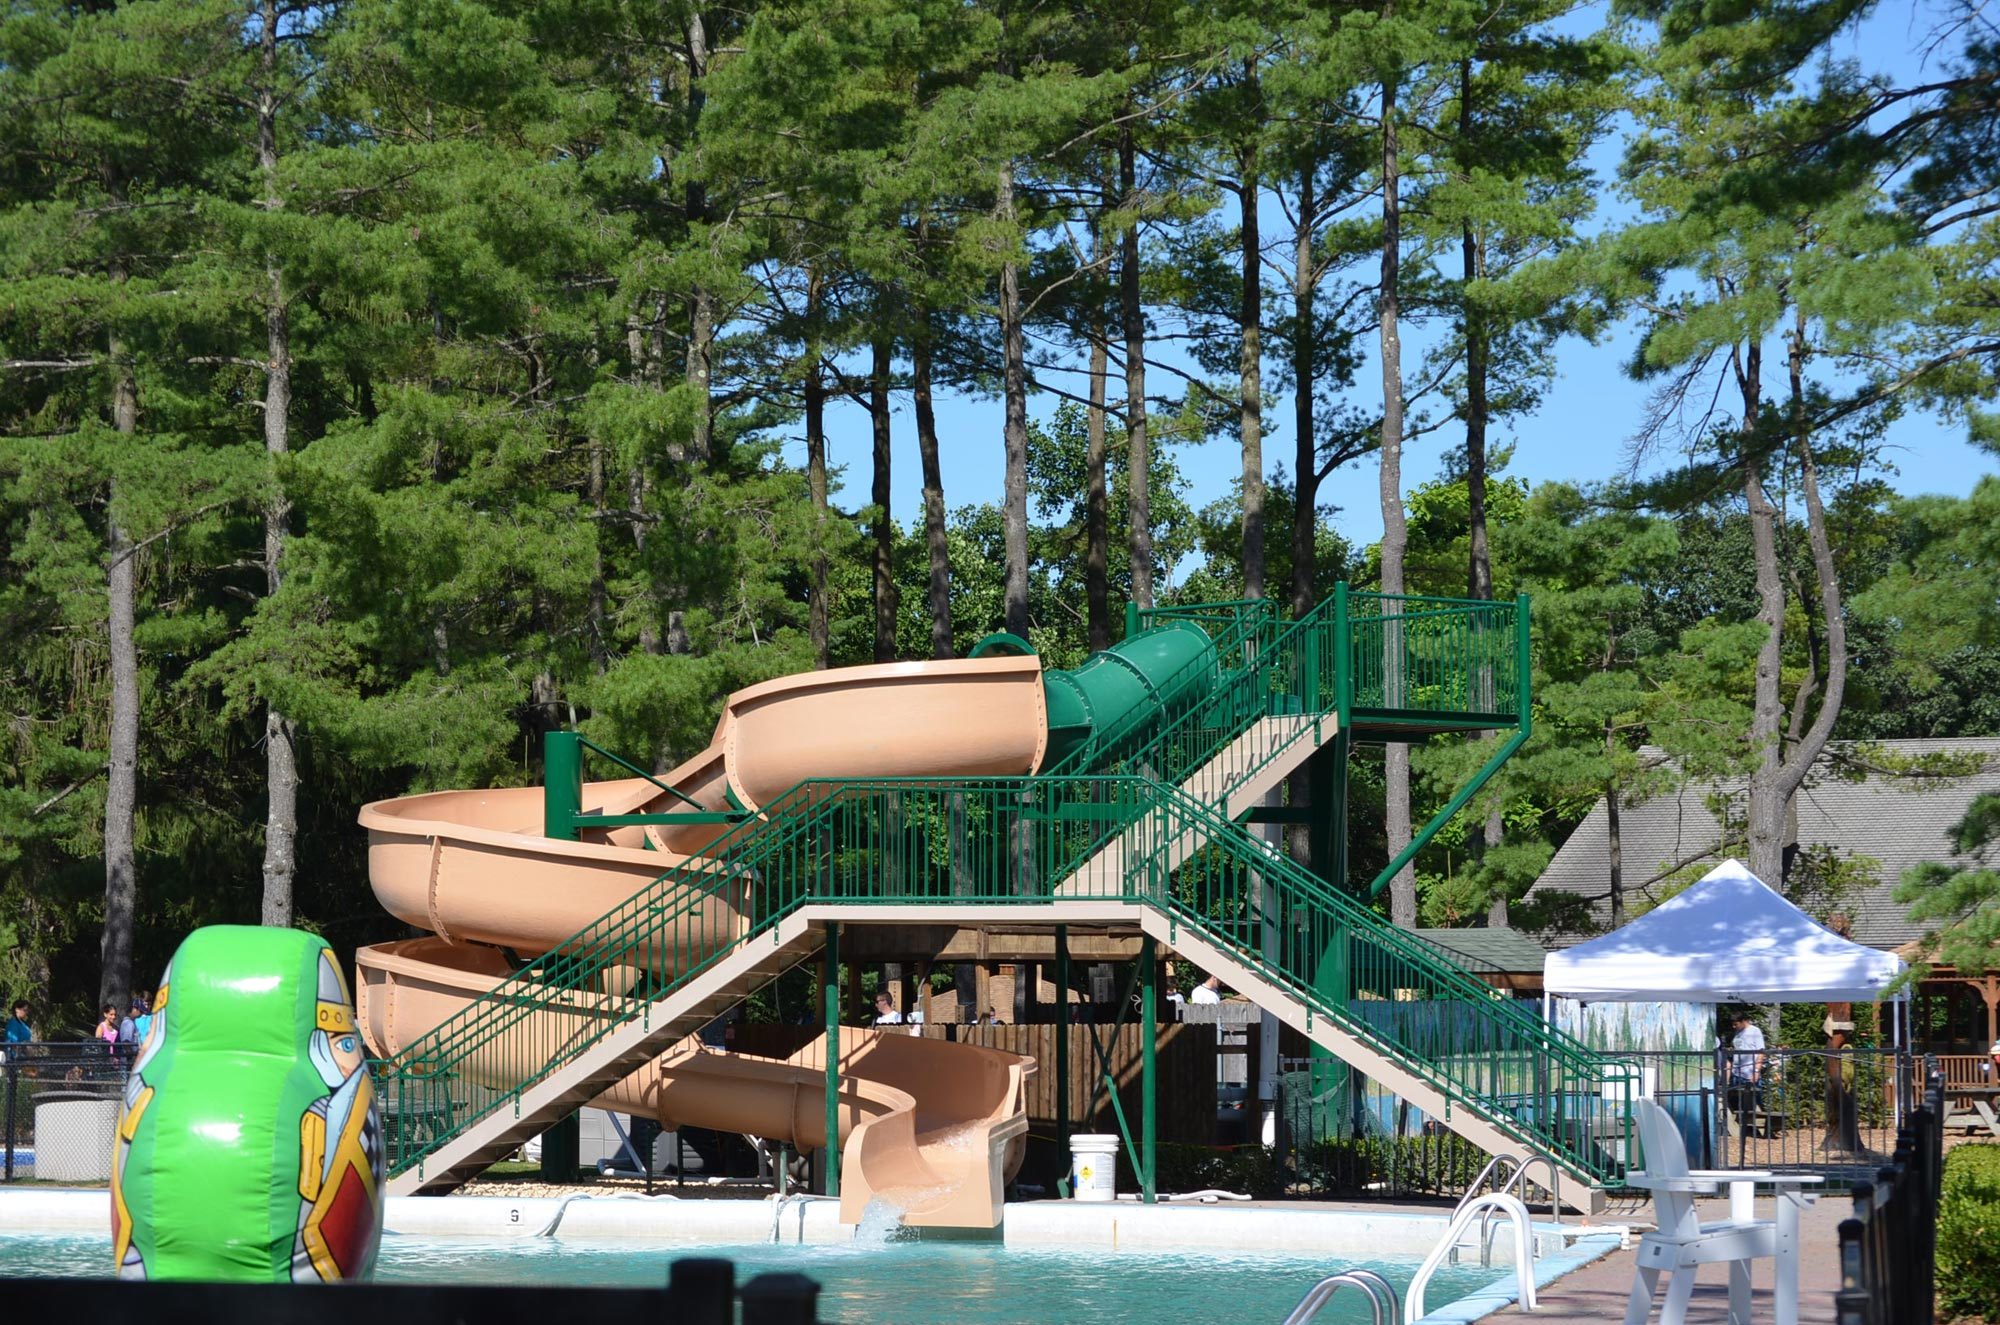 120-ft. Waterslide